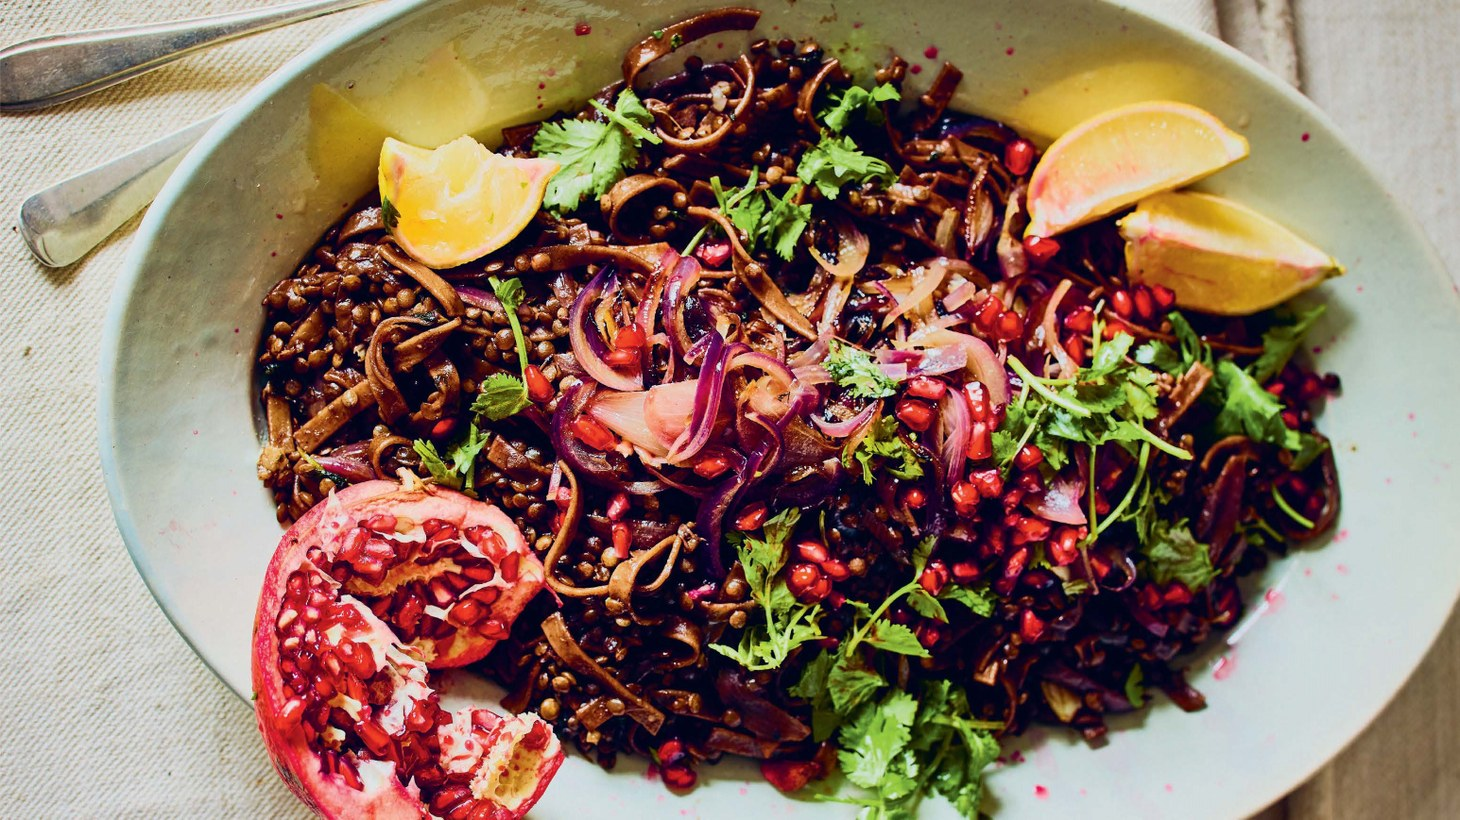 Anas Atassi attests that he didn't have horak osbao, a lentil and pasta stew with tamarind and pomegranate, until he was an adult.